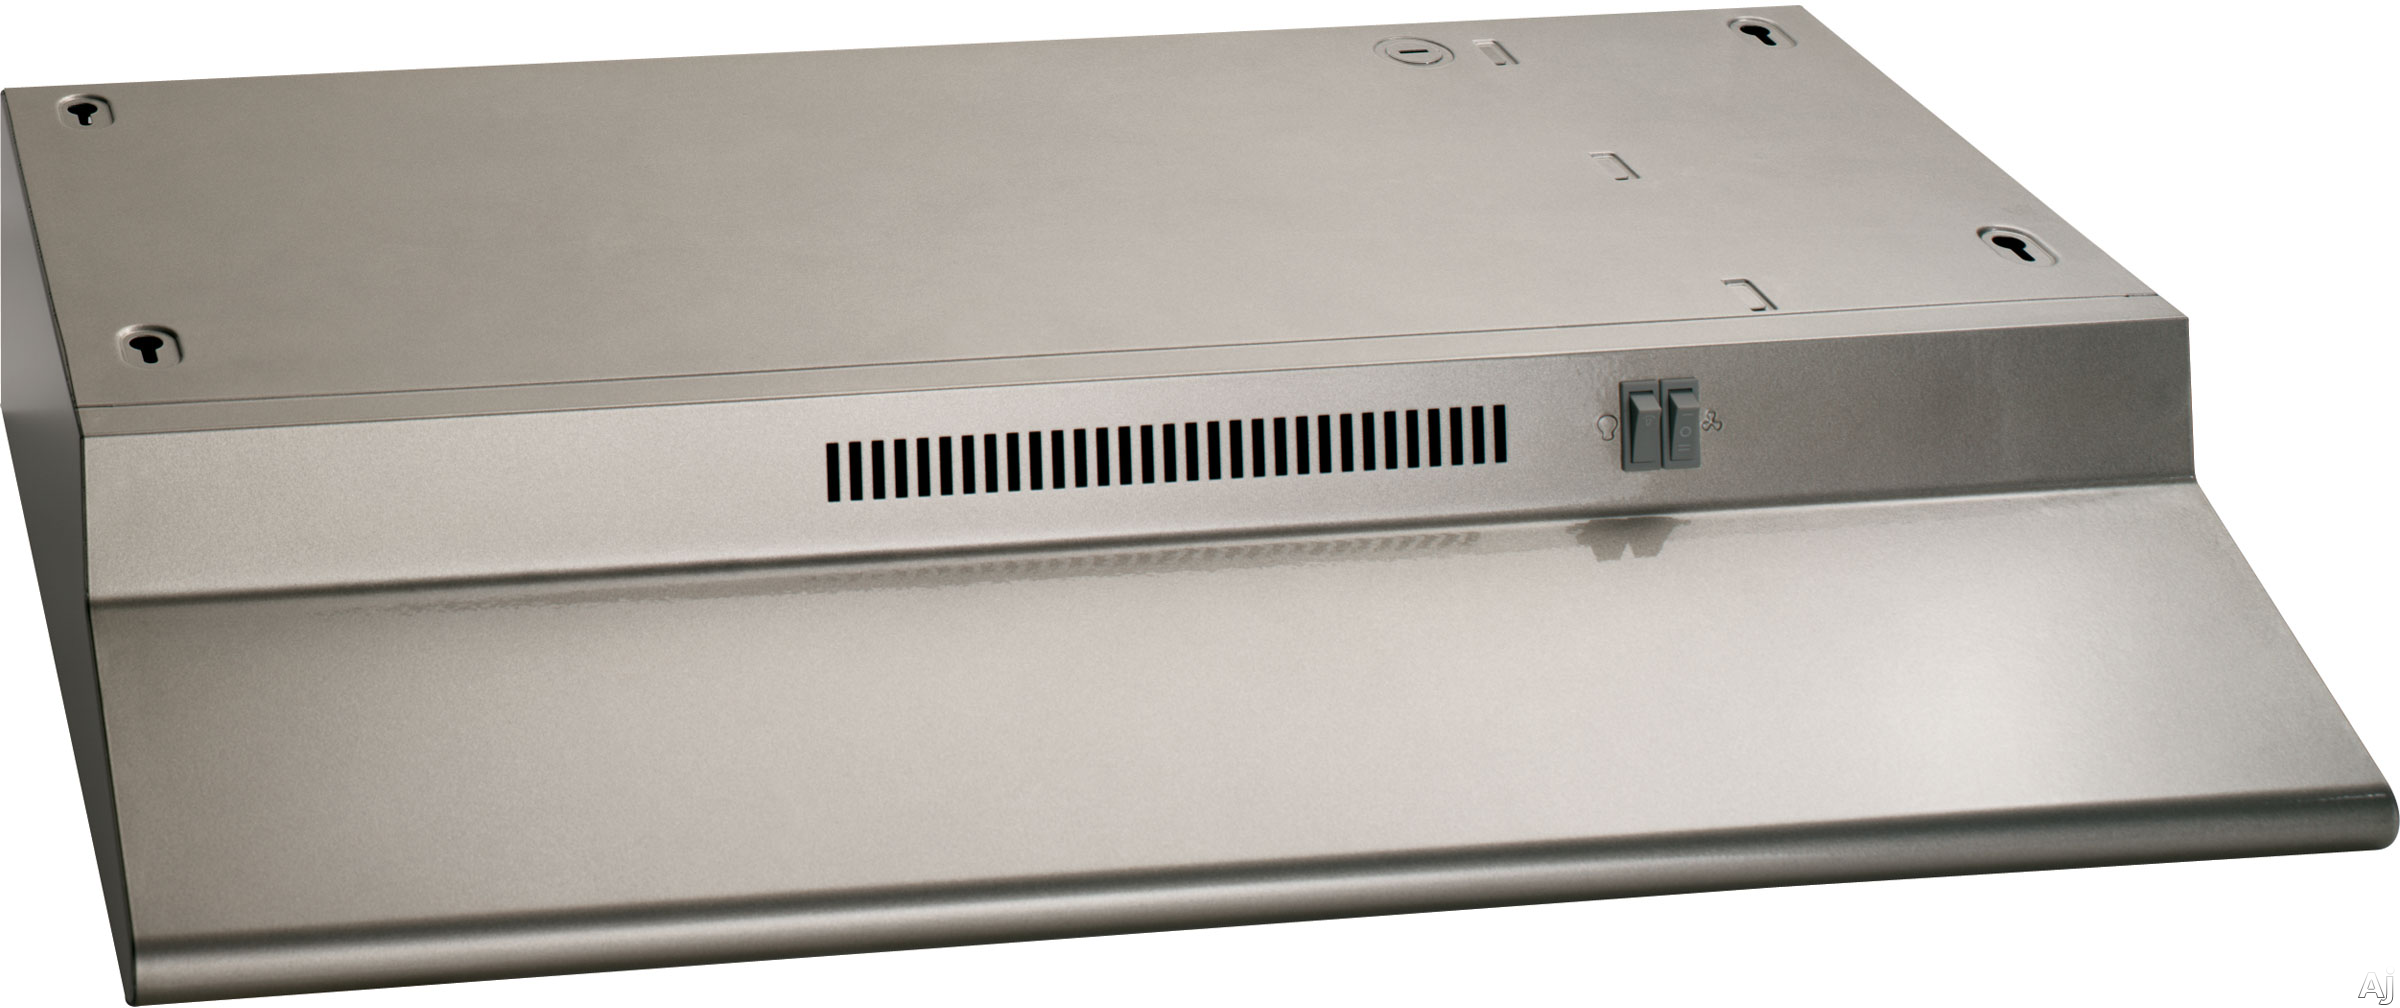 GE JN328KSA 30 Inch Under Cabinet Range Hood with 2 Fan Speeds, Cooktop Light, Removable Grease Filter and Non-Vented